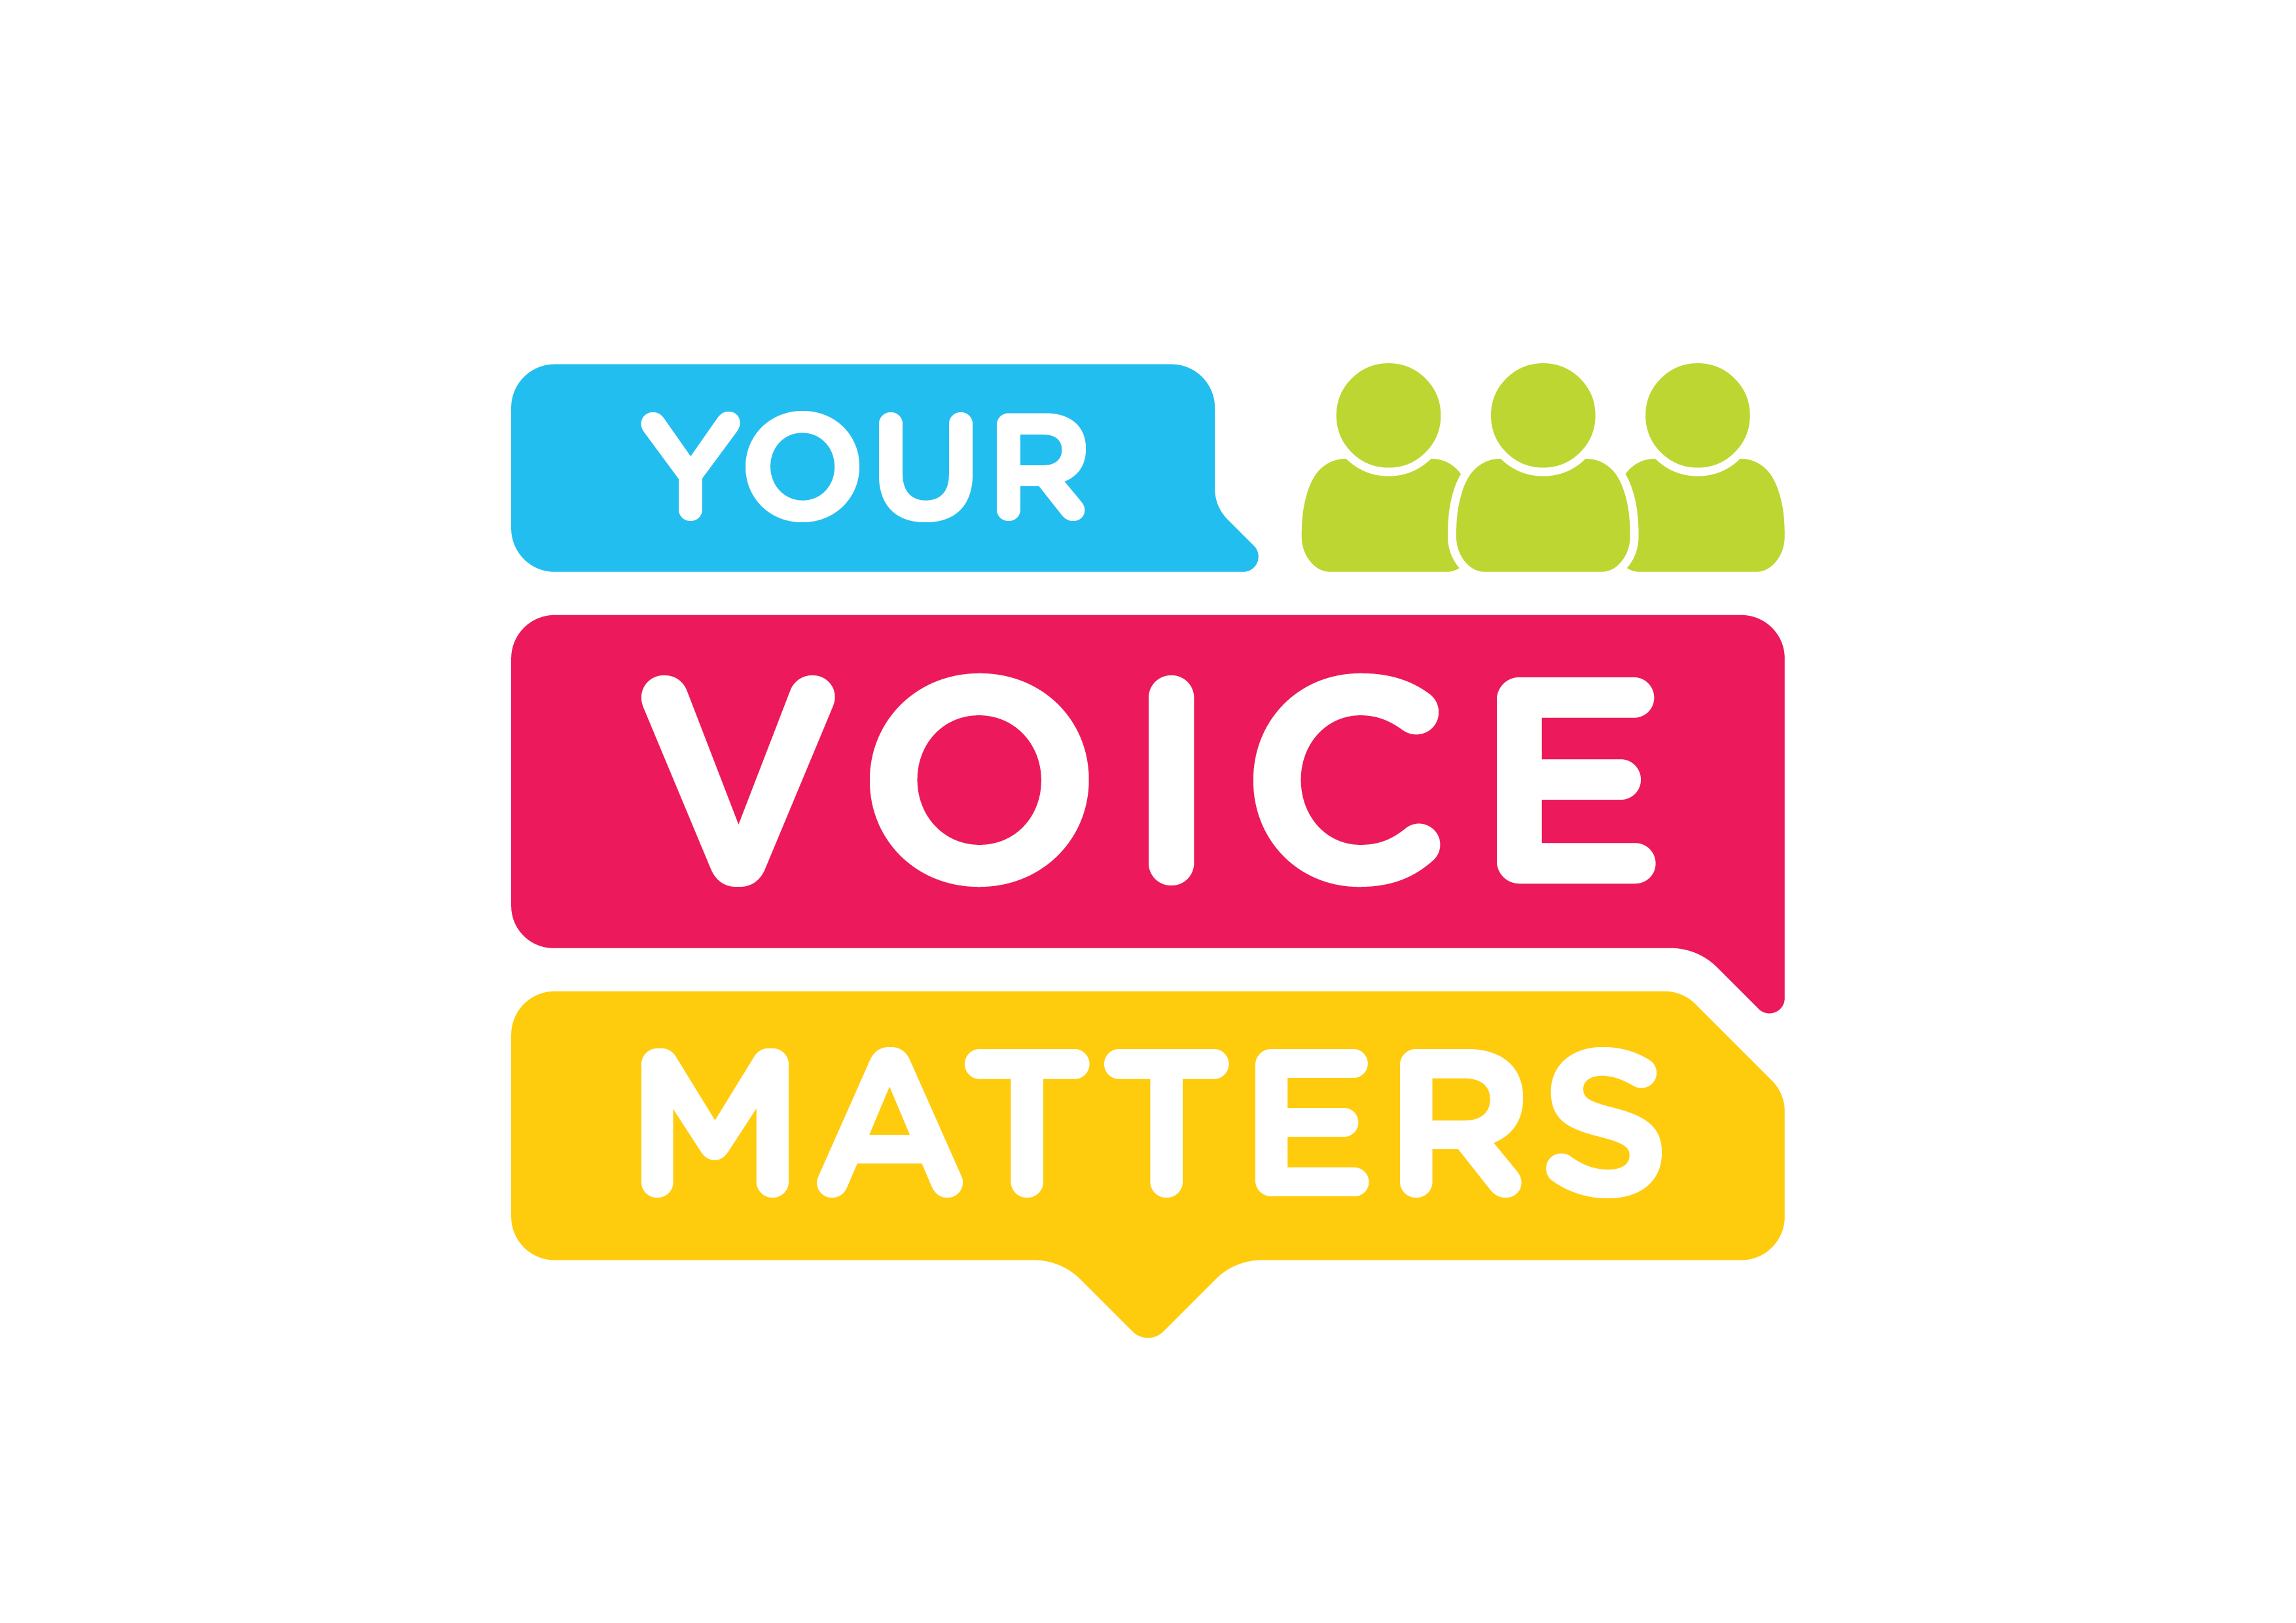 Your Voice Matters at Clonmel Library